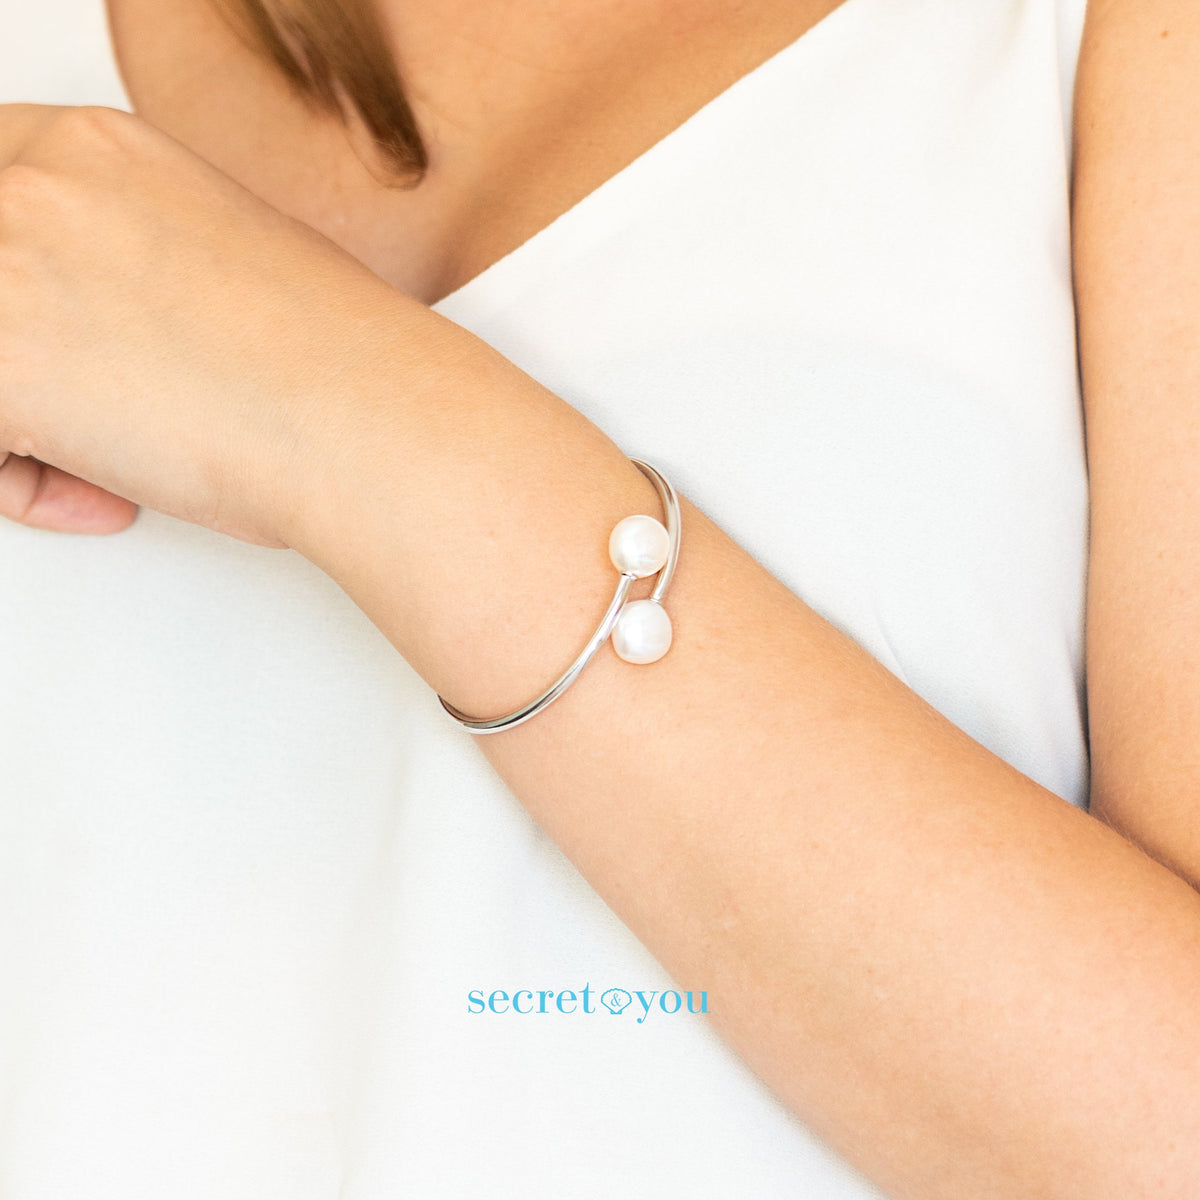 Pulsera de Plata de Ley con Perlas de Agua Dulce Barrocas 11-12 mm Secret & You